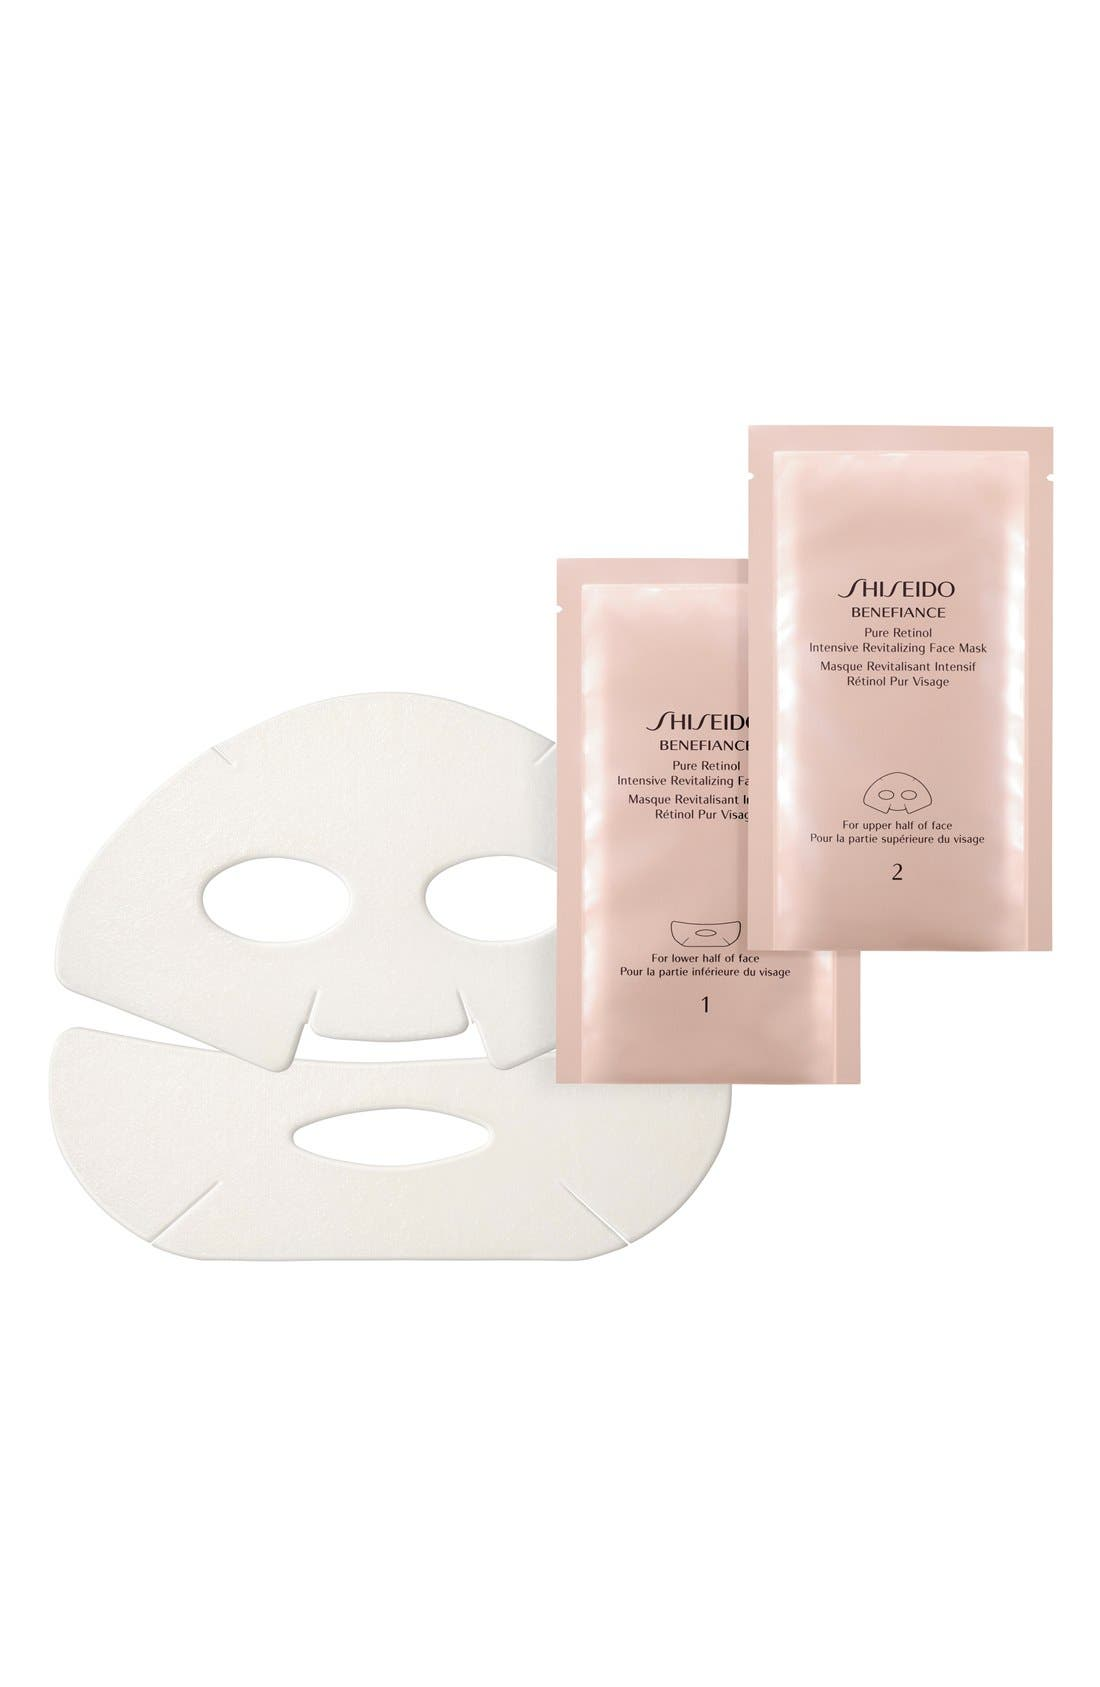 'Benefiance' Pure Retinol Intensive Revitalizing Face Mask,                         Main,                         color, NO COLOR